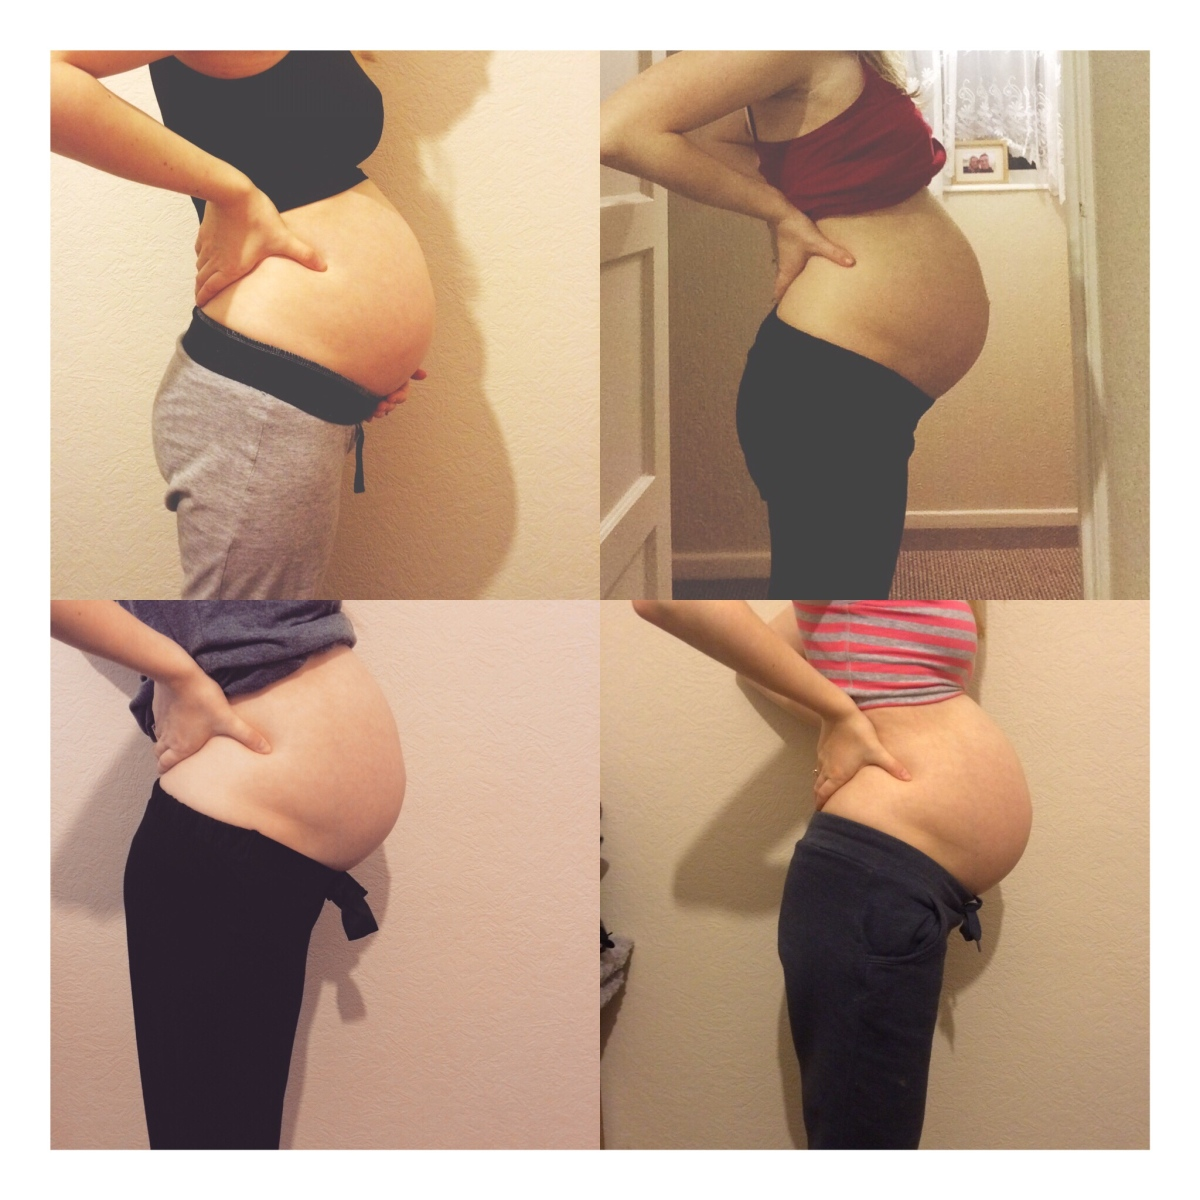 Baby Bump Progression in Pictures